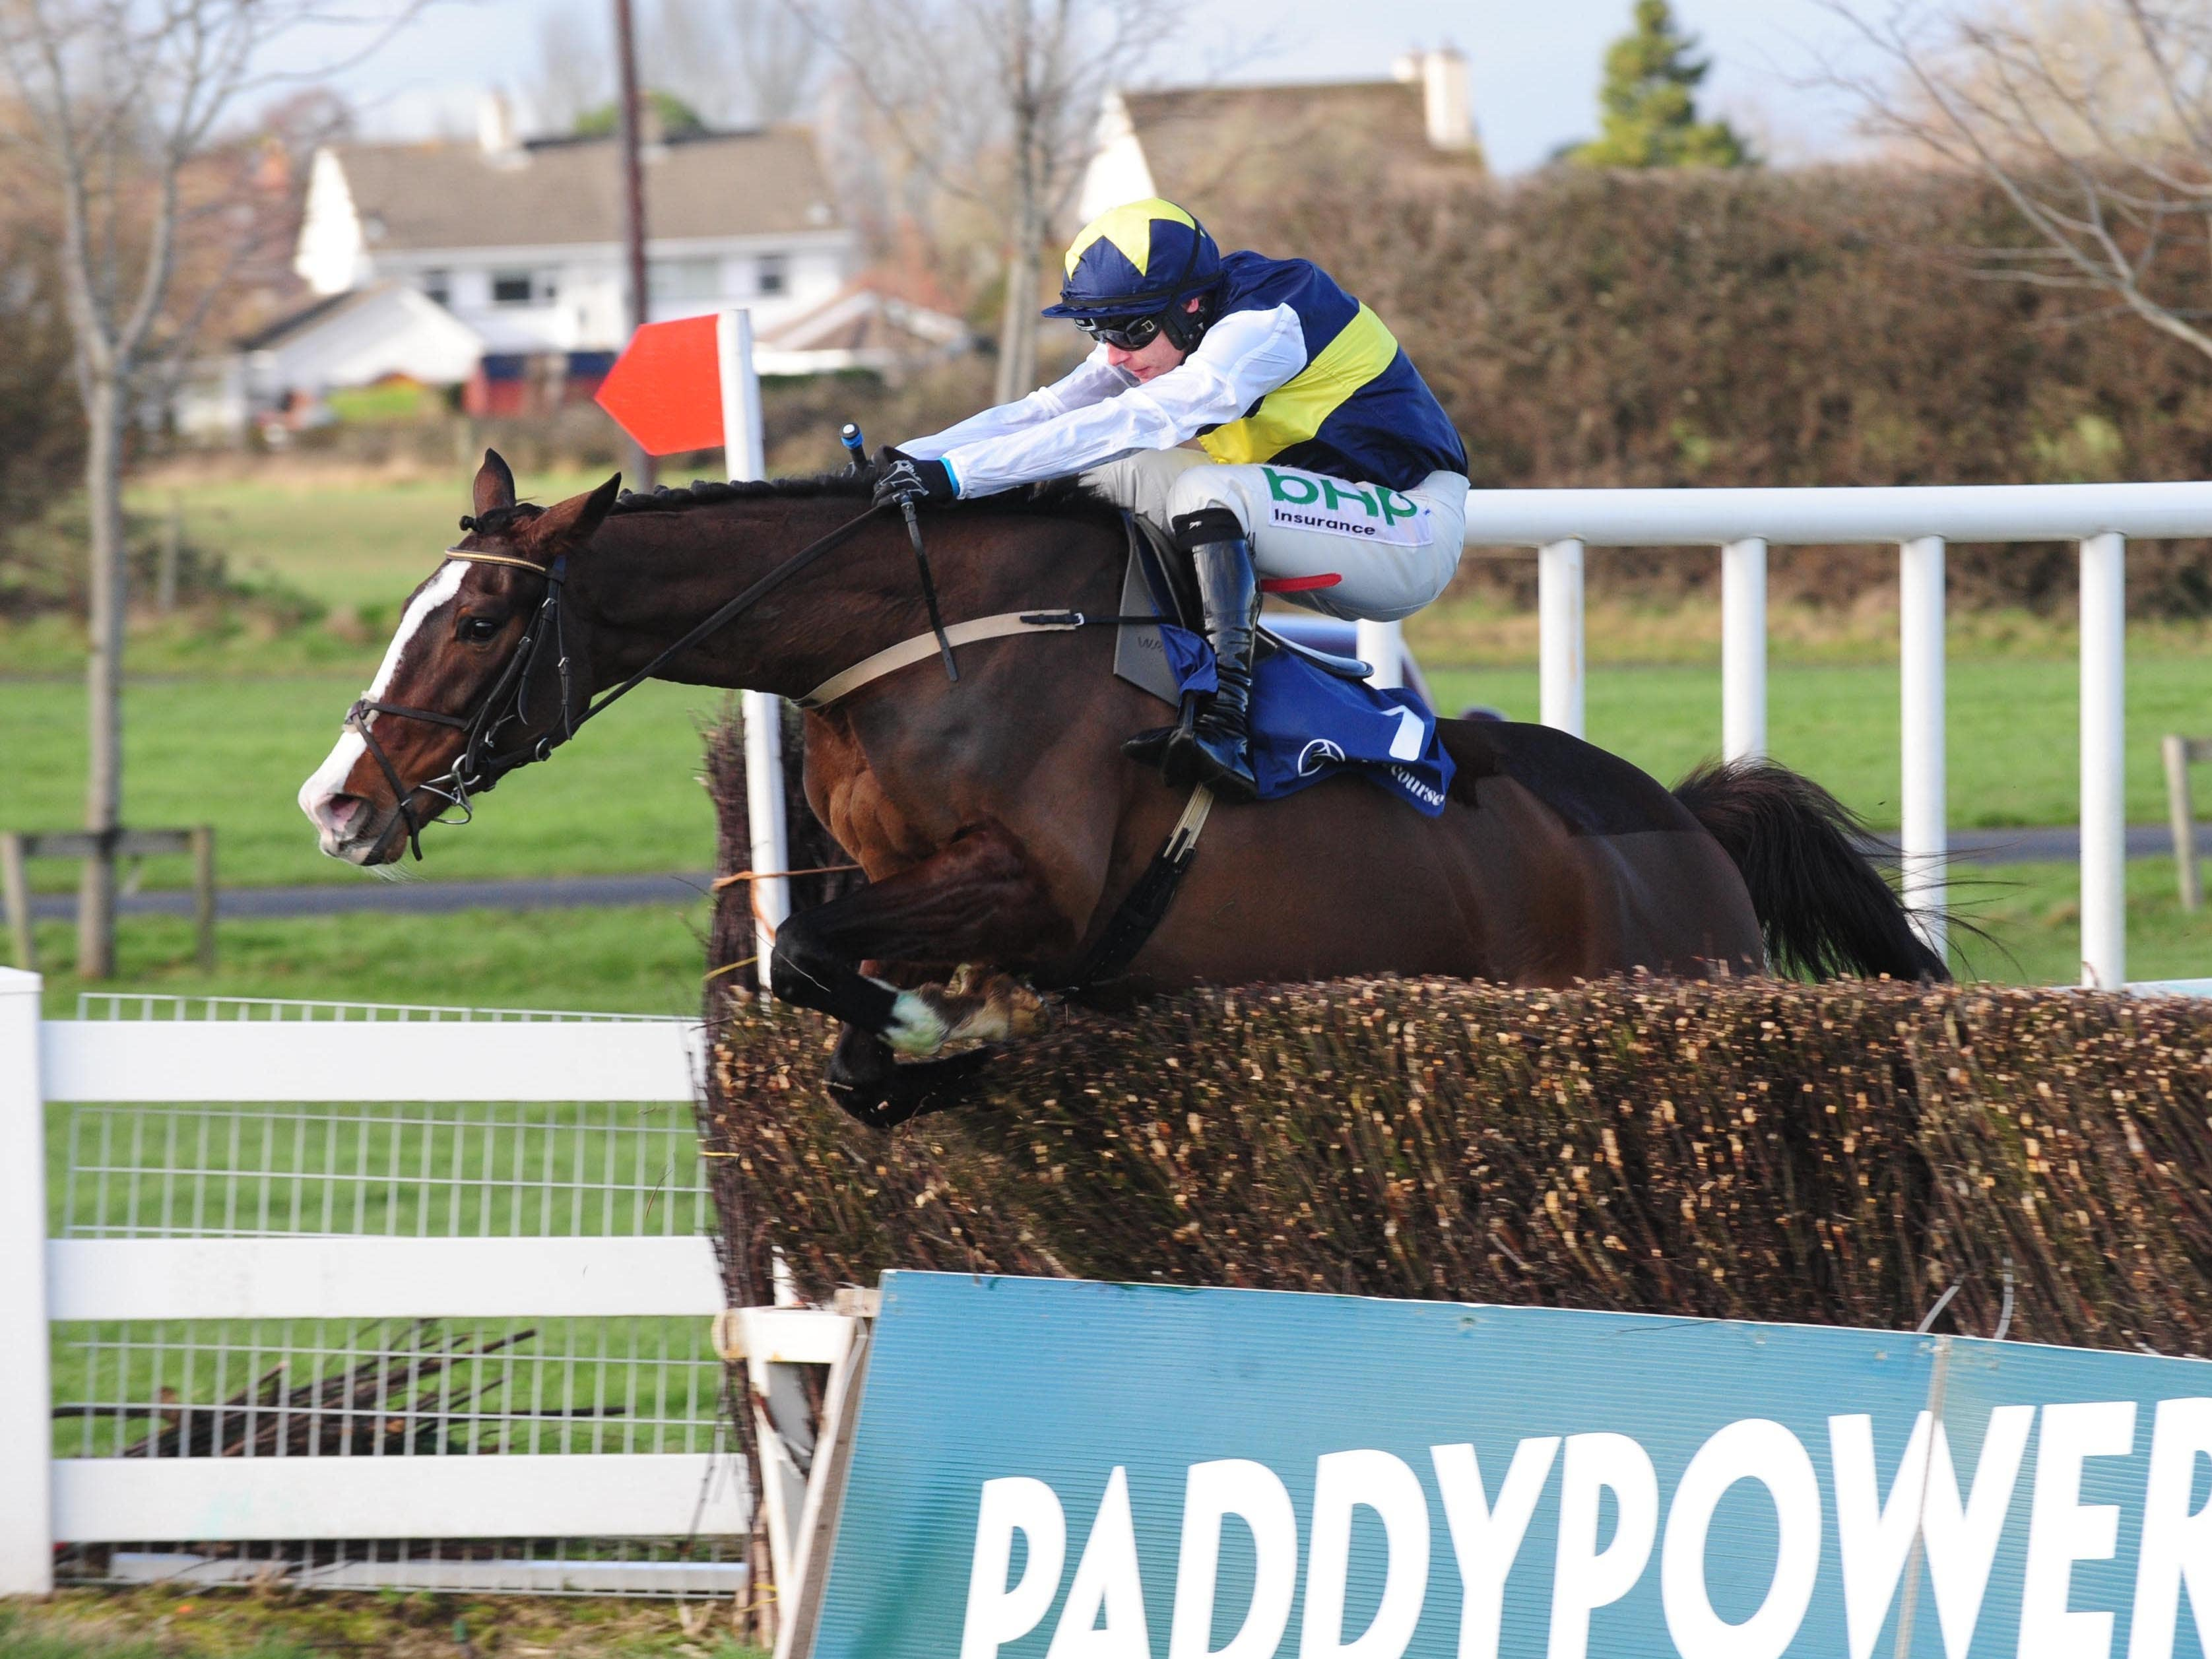 Pravalaguna and Paul Townend jump the last fence to win the BBA Ireland Opera Hat Mares Chase at Naas (PA)